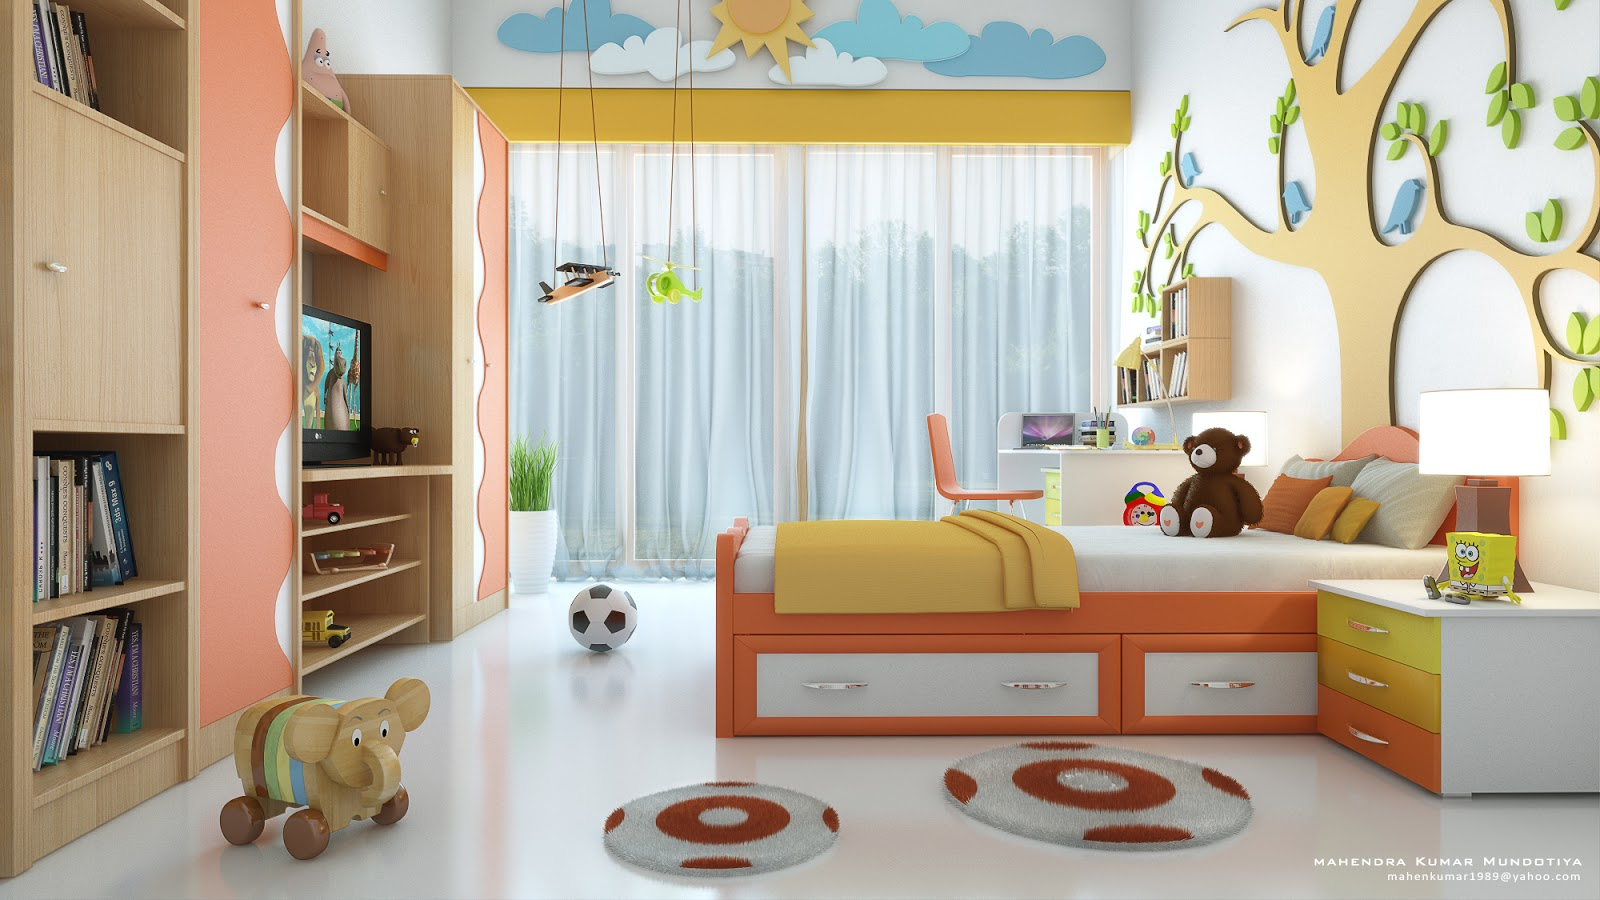 8 rules for designing a kid's room - russiansitters